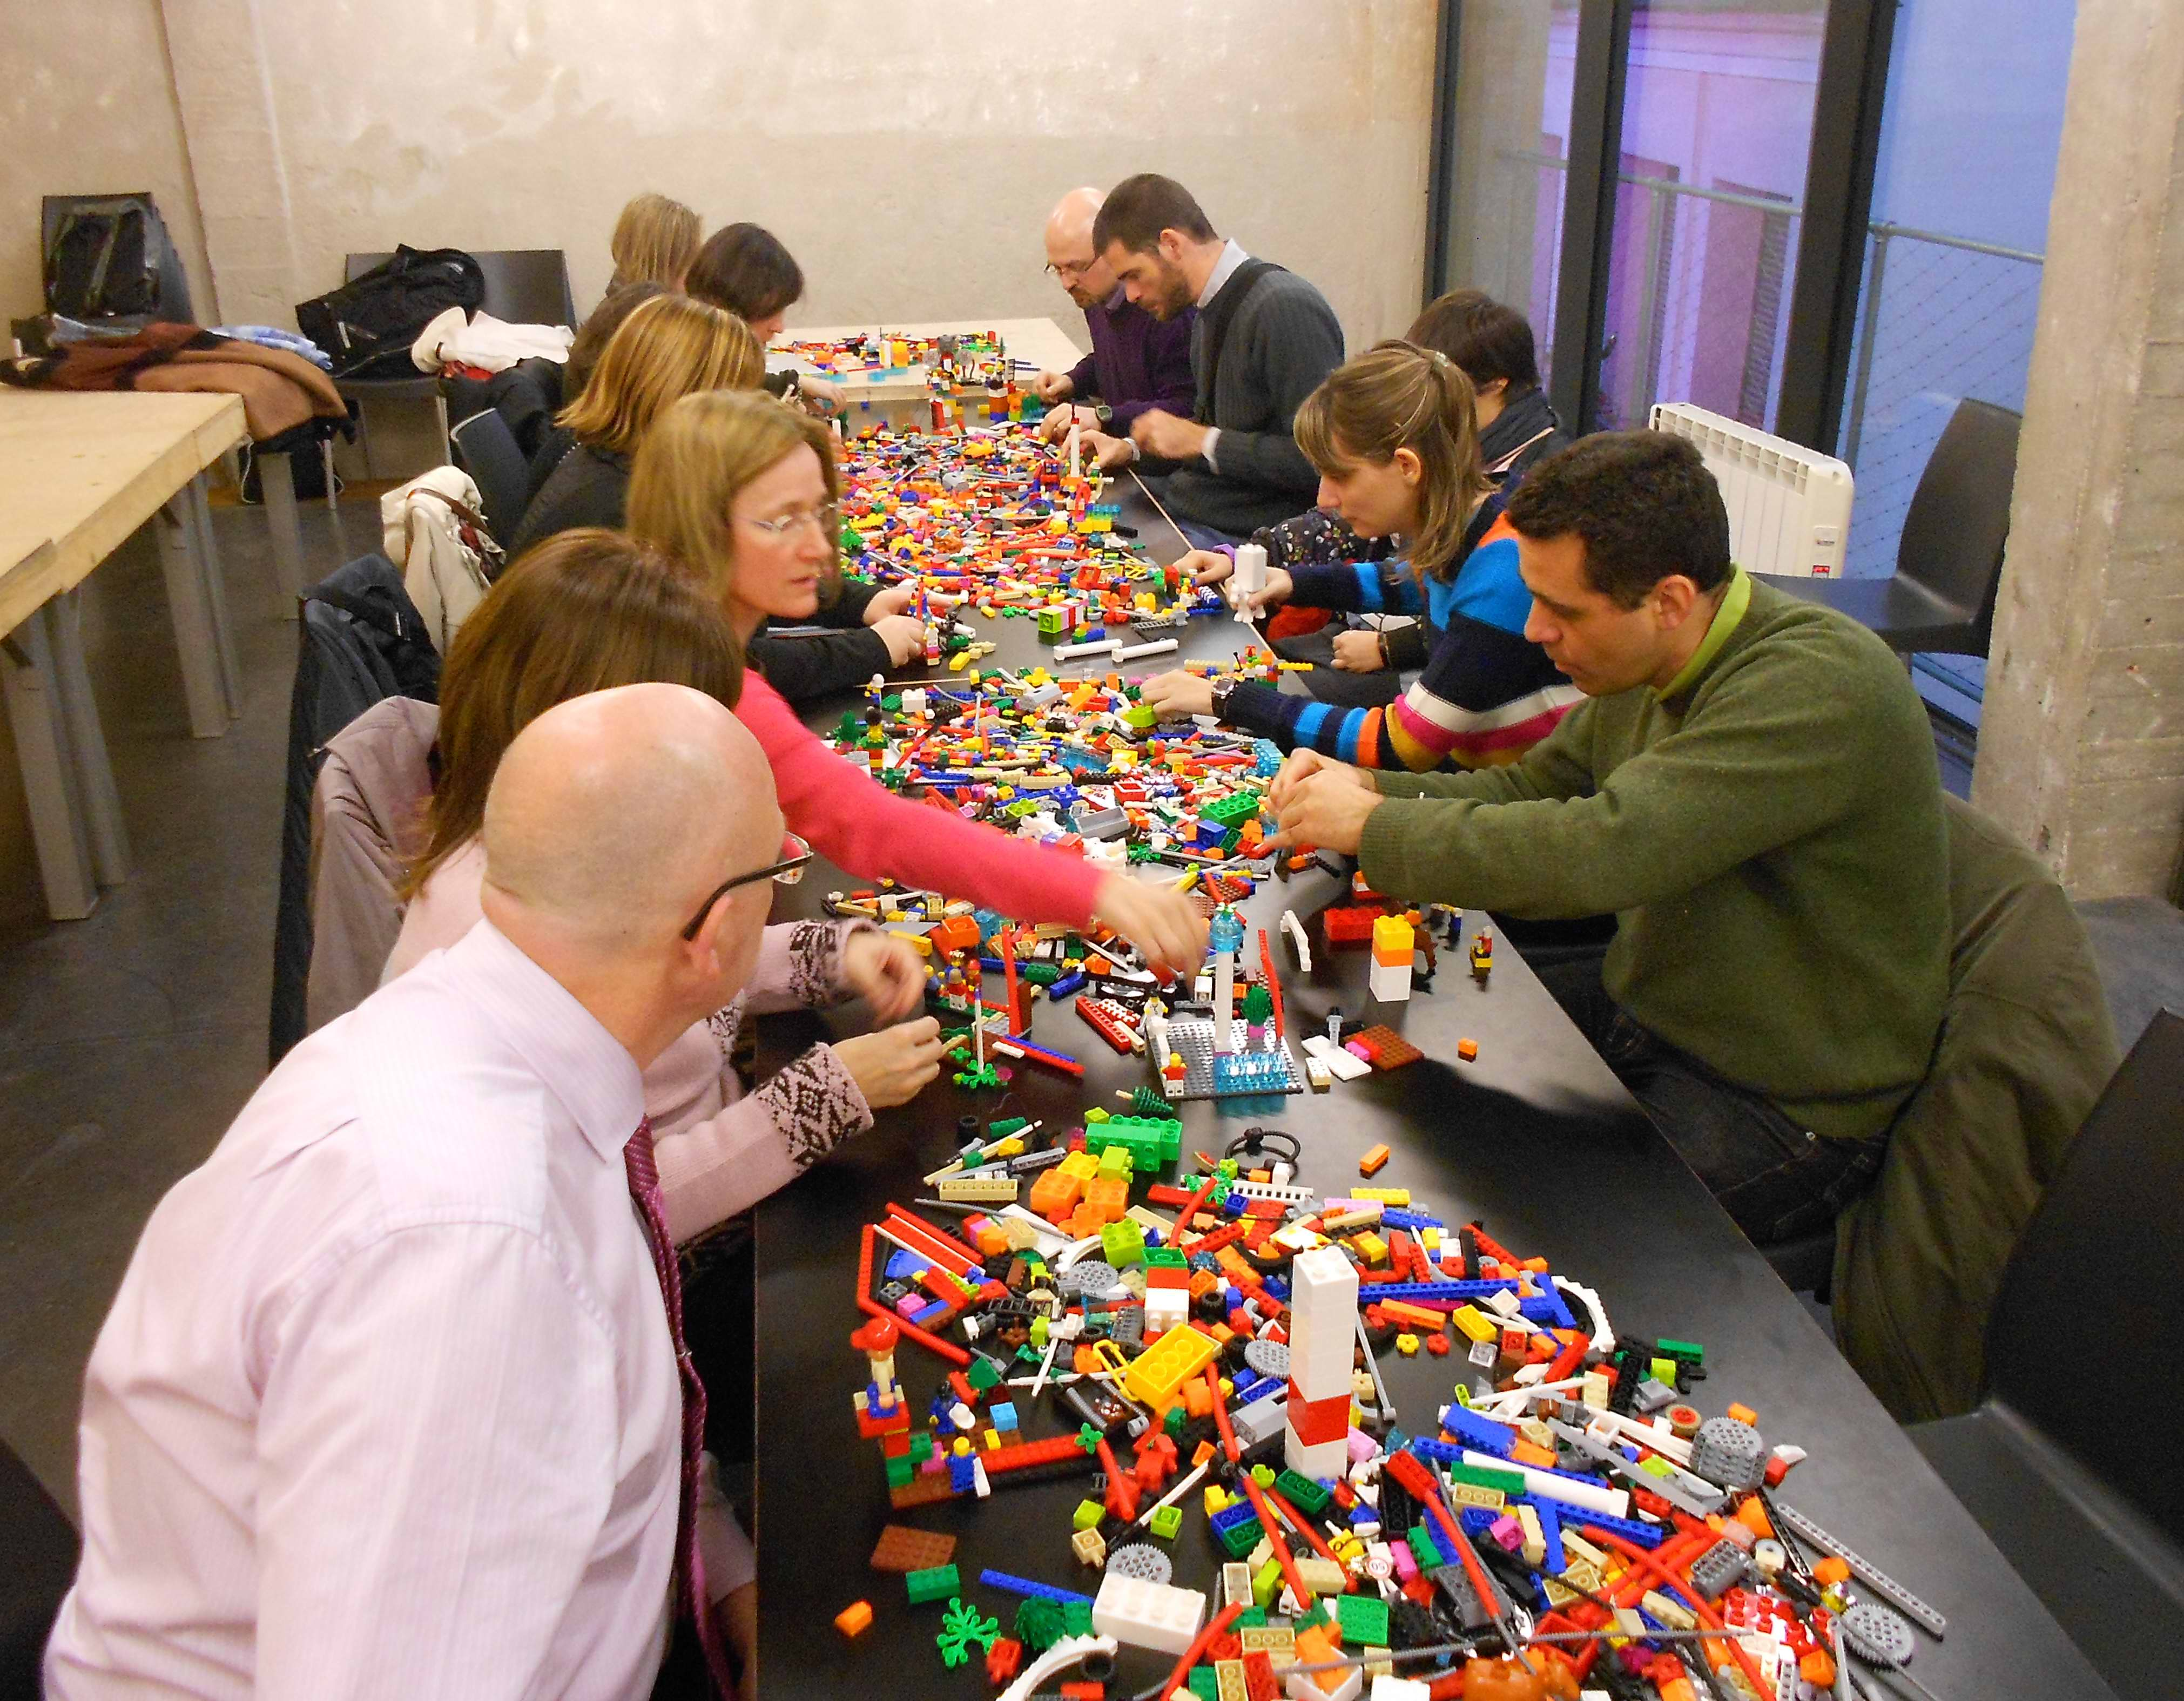 Lego Team Building Activity For Adults